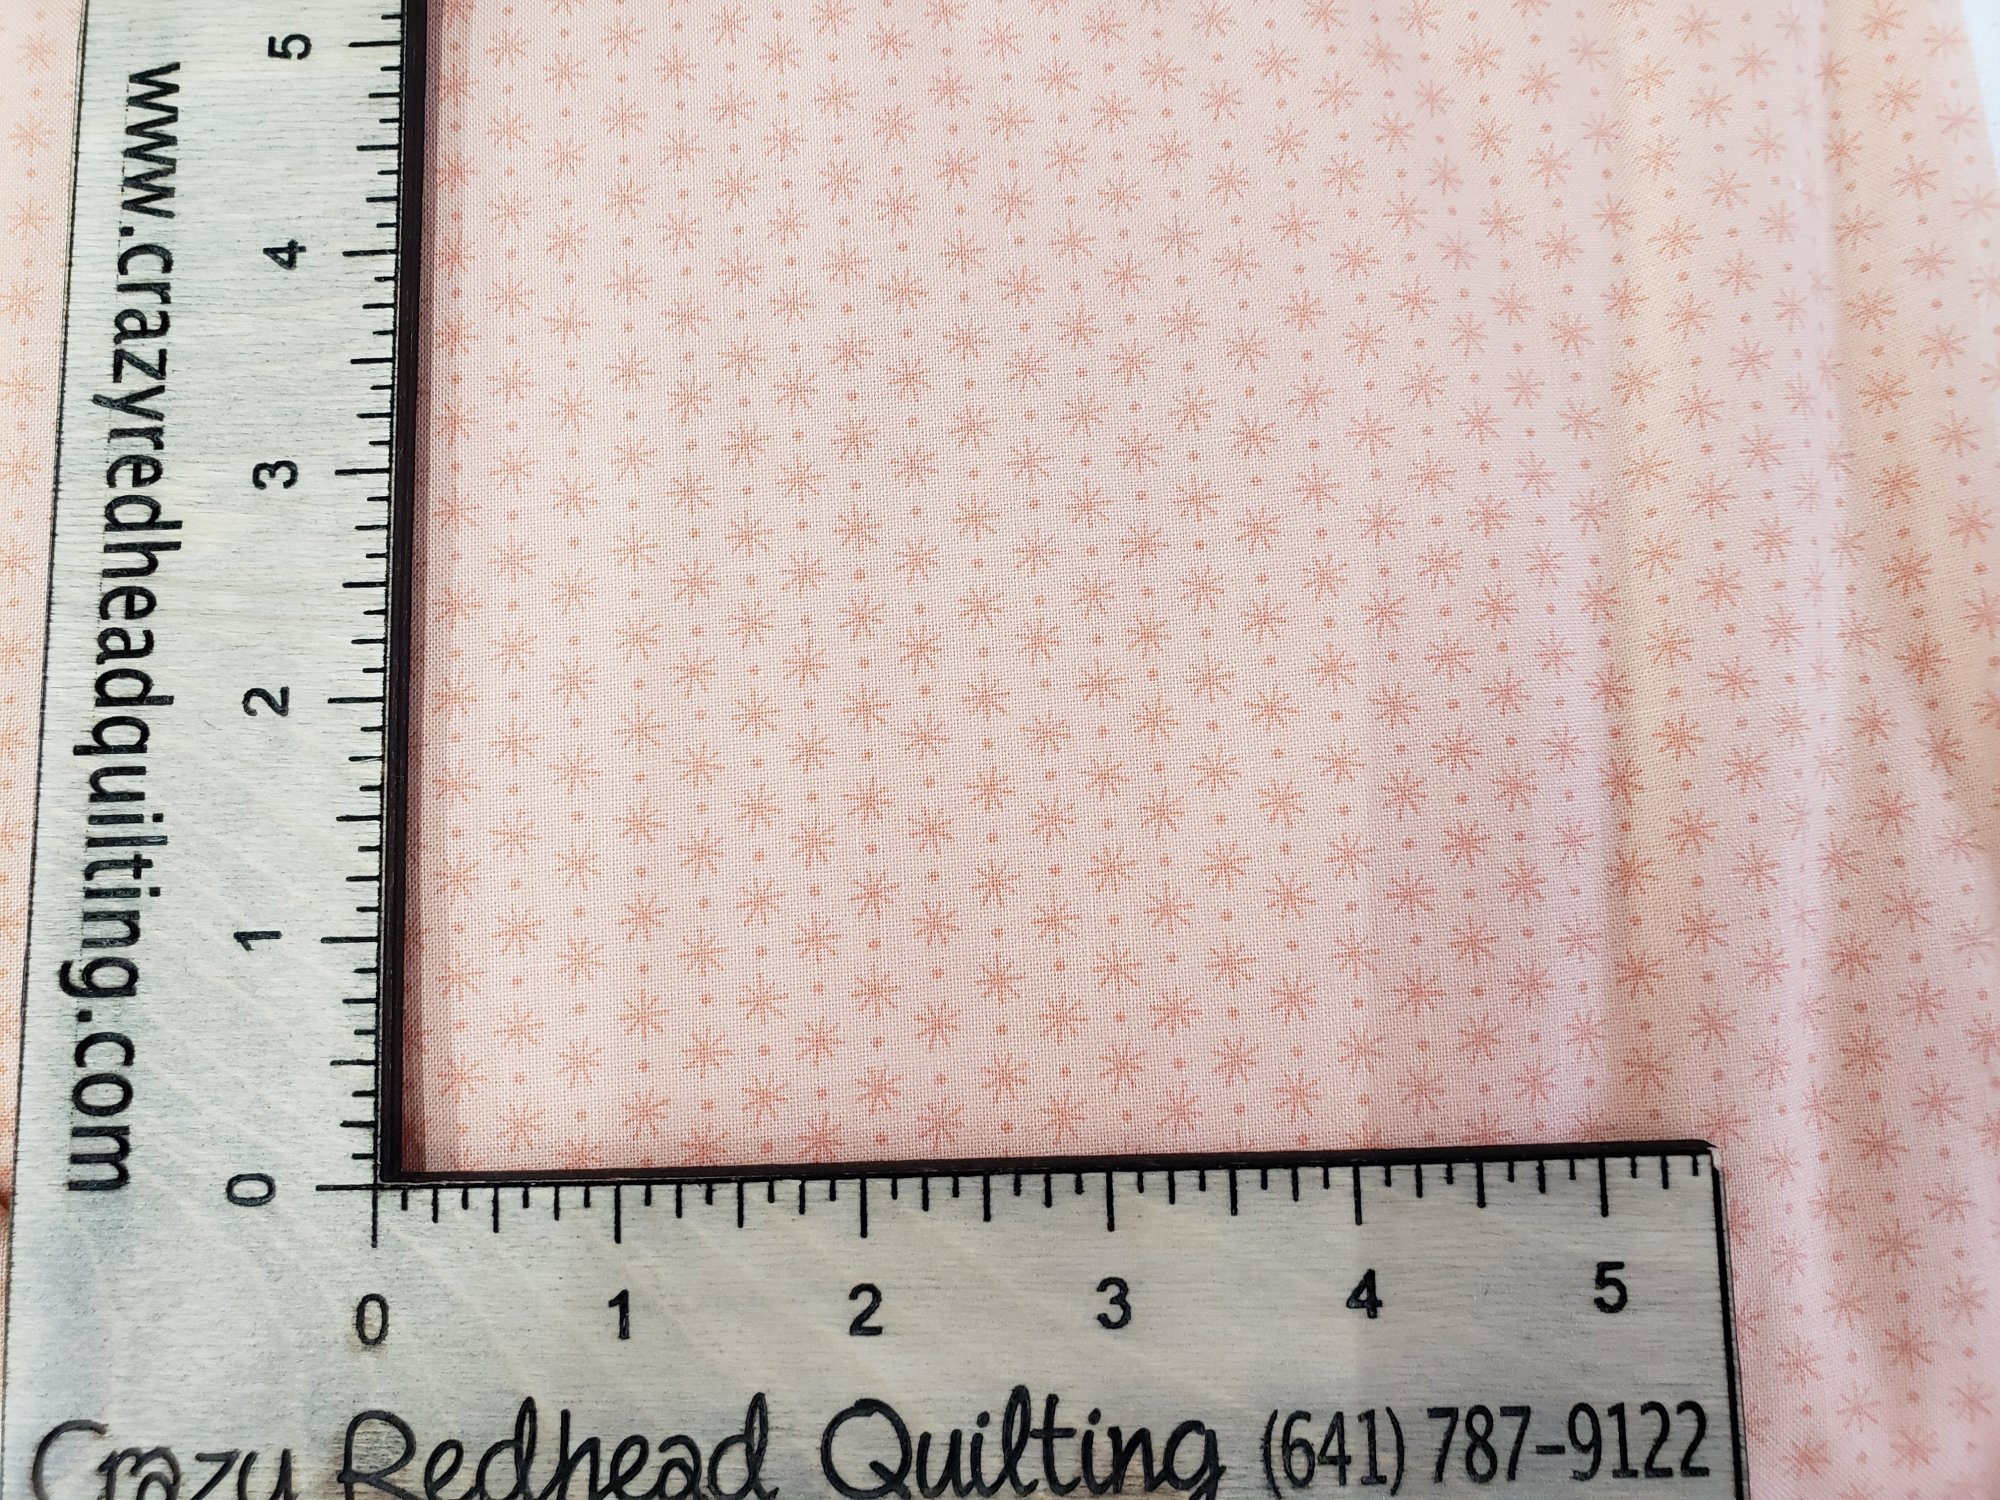 Andover Fabrics Guising By Lizzy House Peach #5703